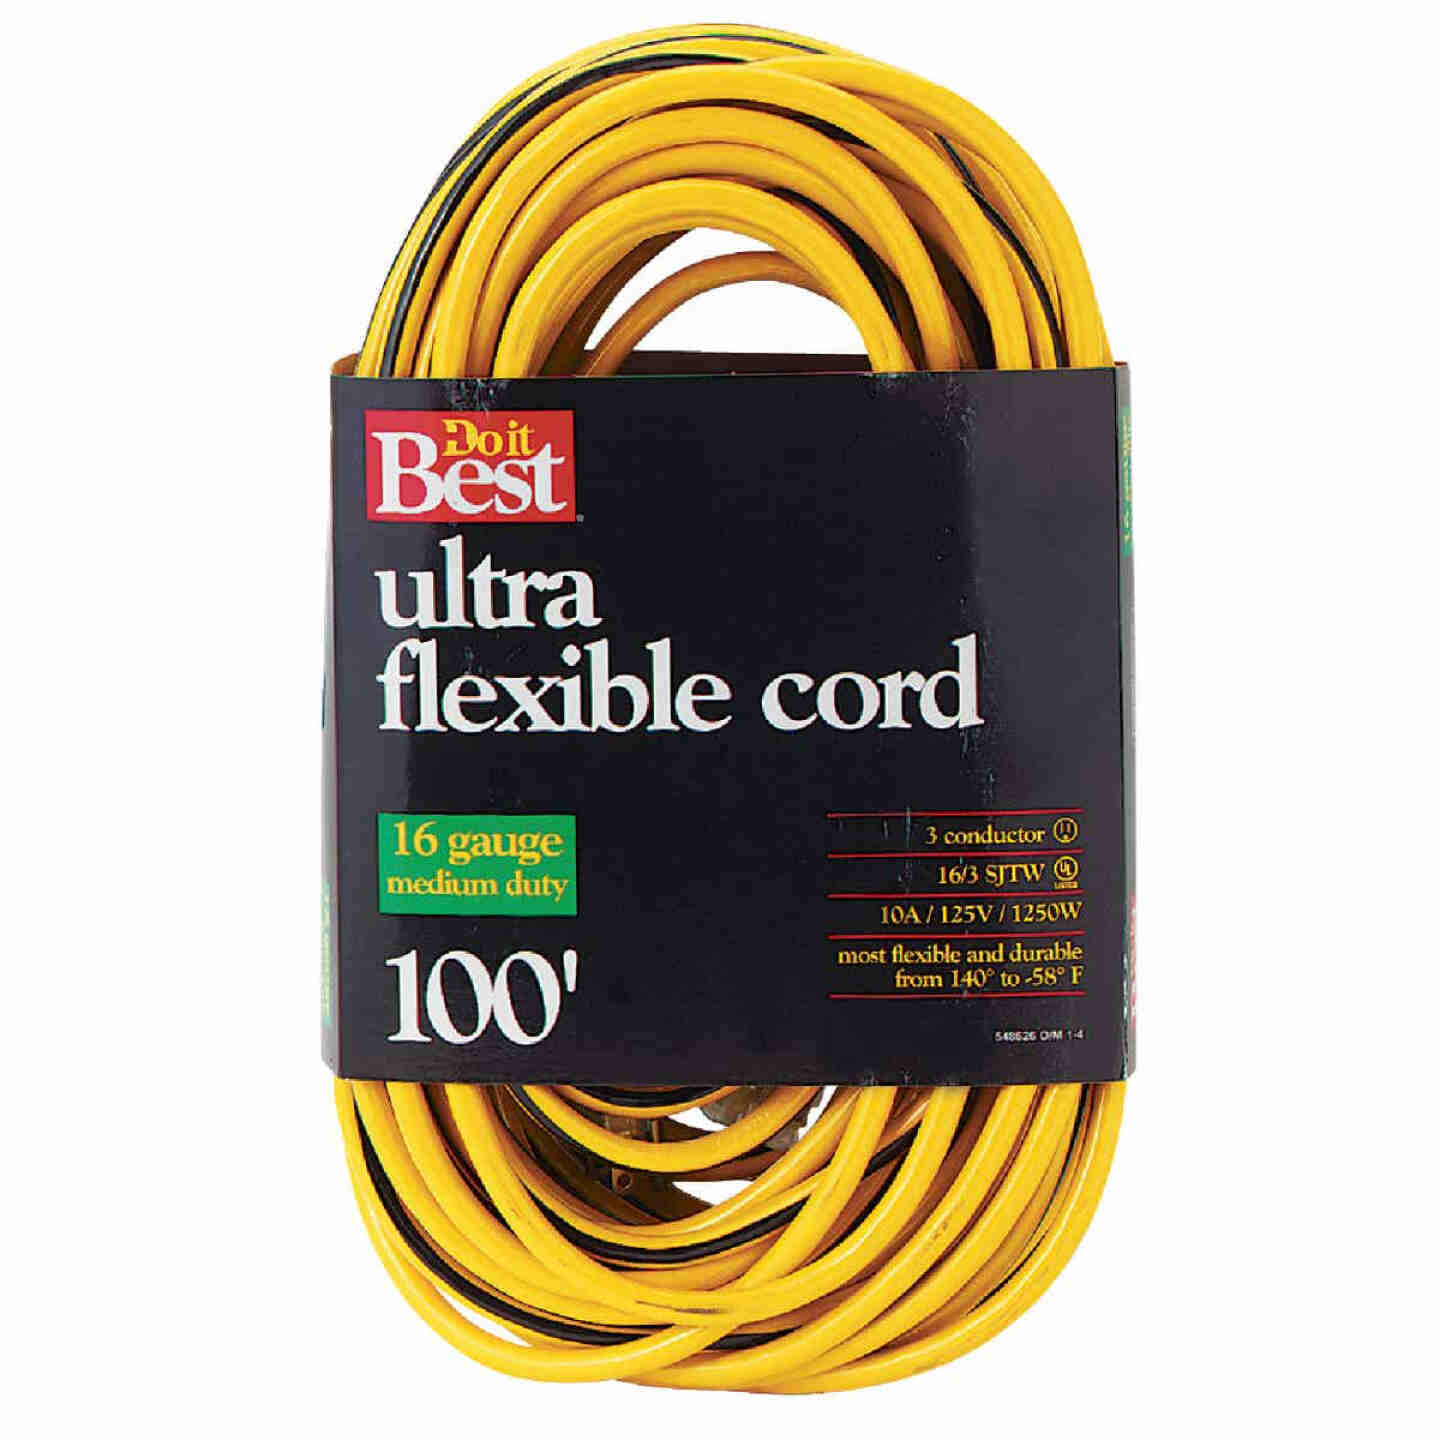 Do it Best 100 Ft. 16/3 Medium-Duty Extension Cord Image 1